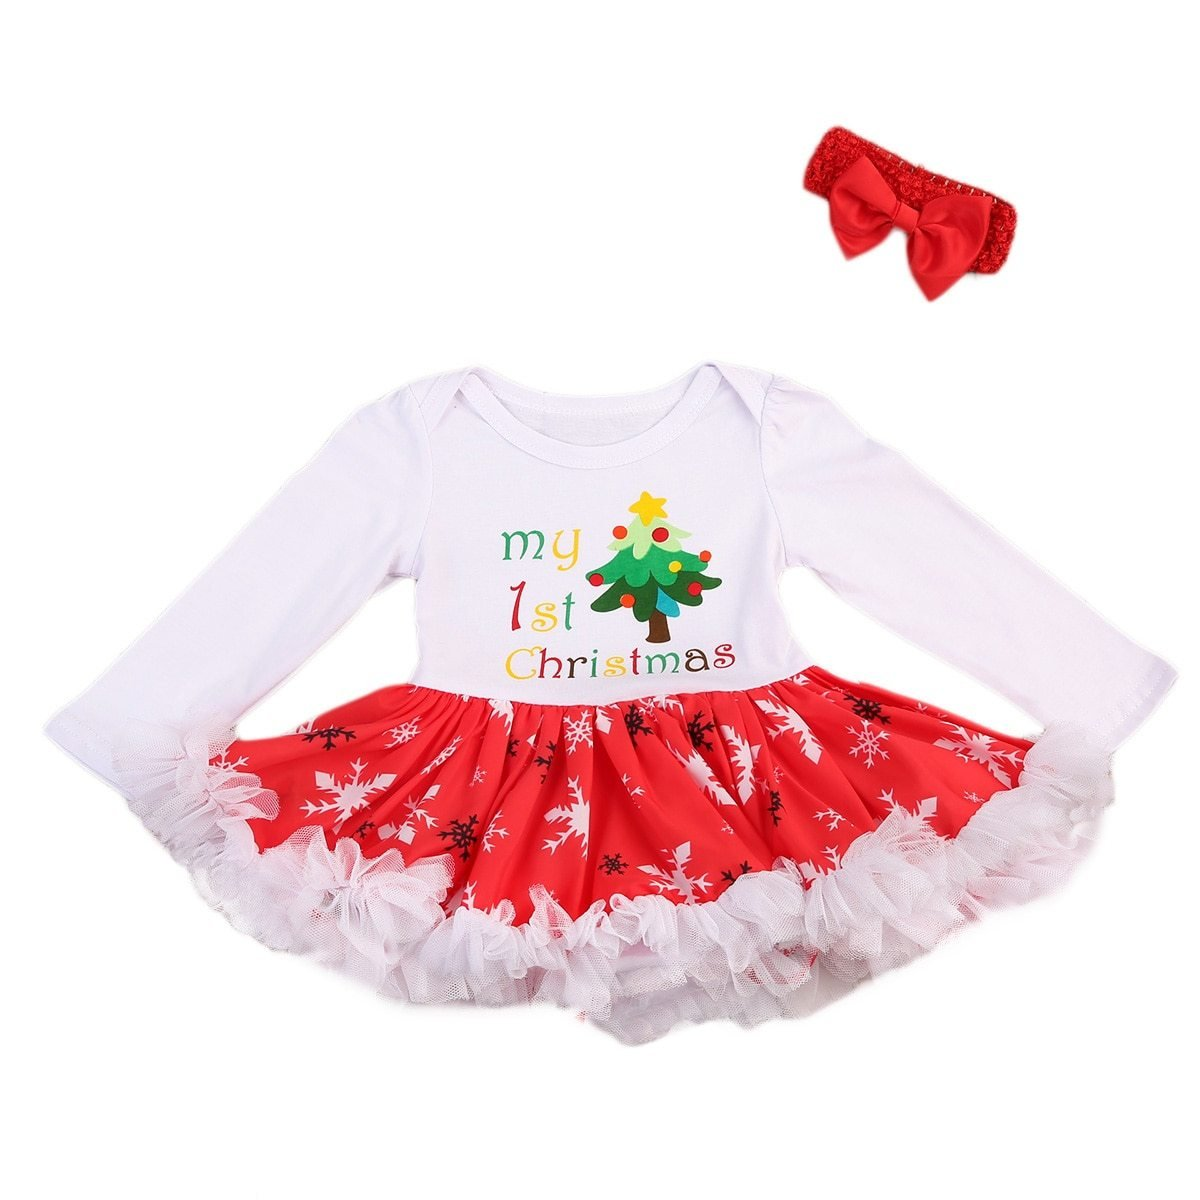 Christmas Baby Romper Dress with Headband - My 1st Christmas - Maraya's Marketplace